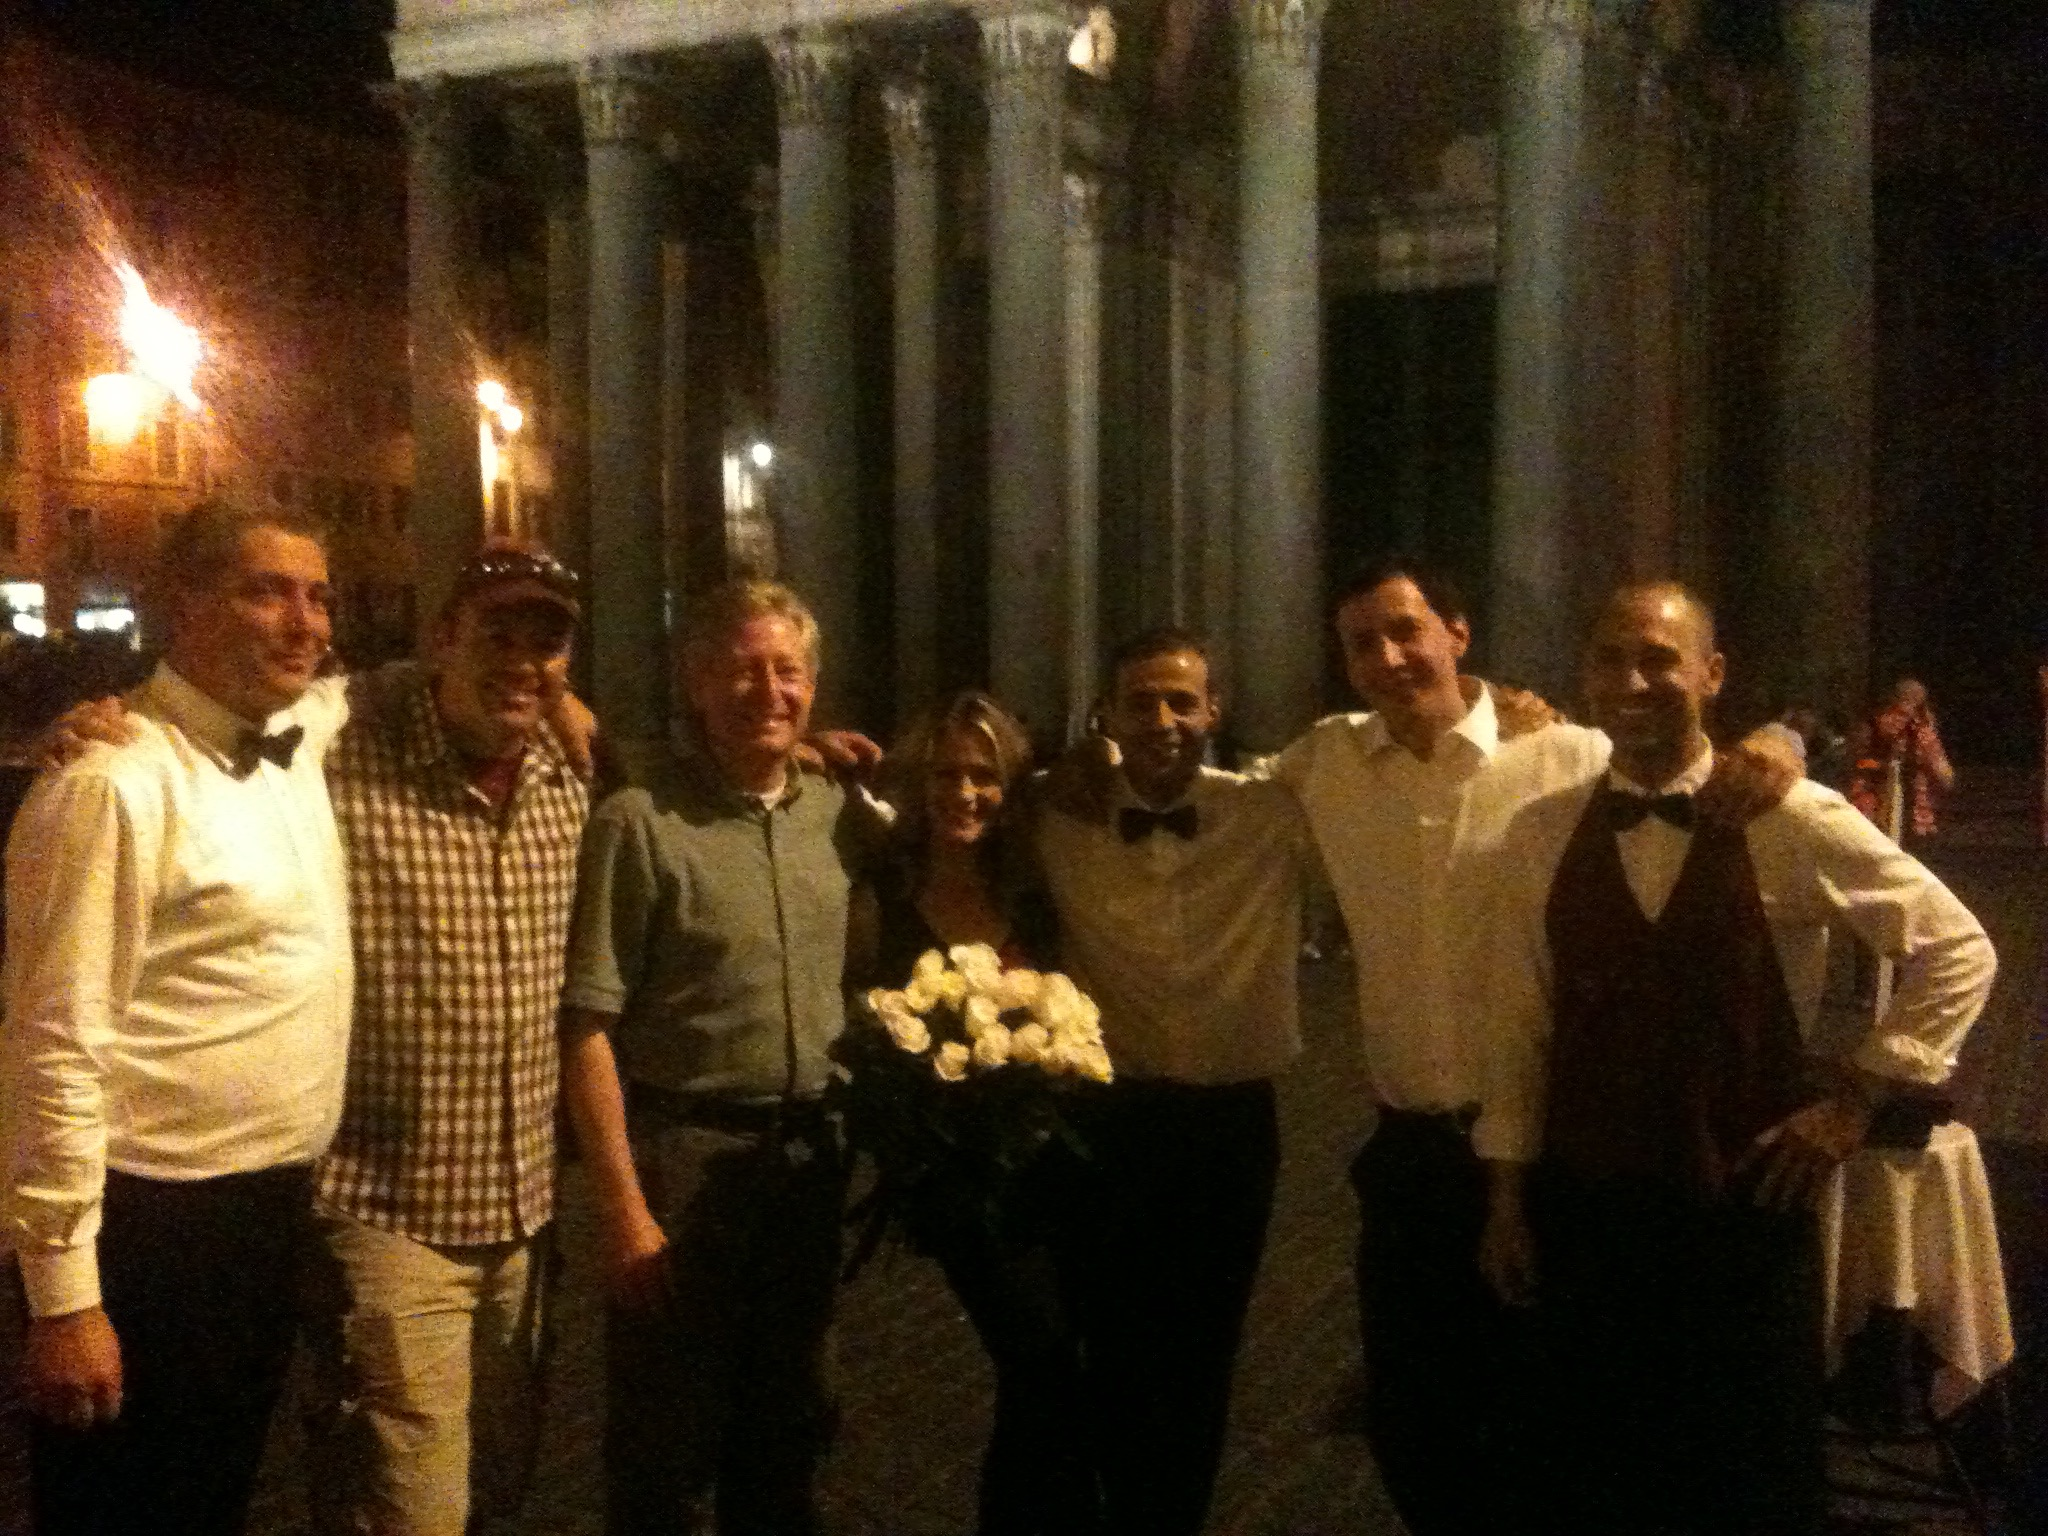 Making new friends in Rome, Italy